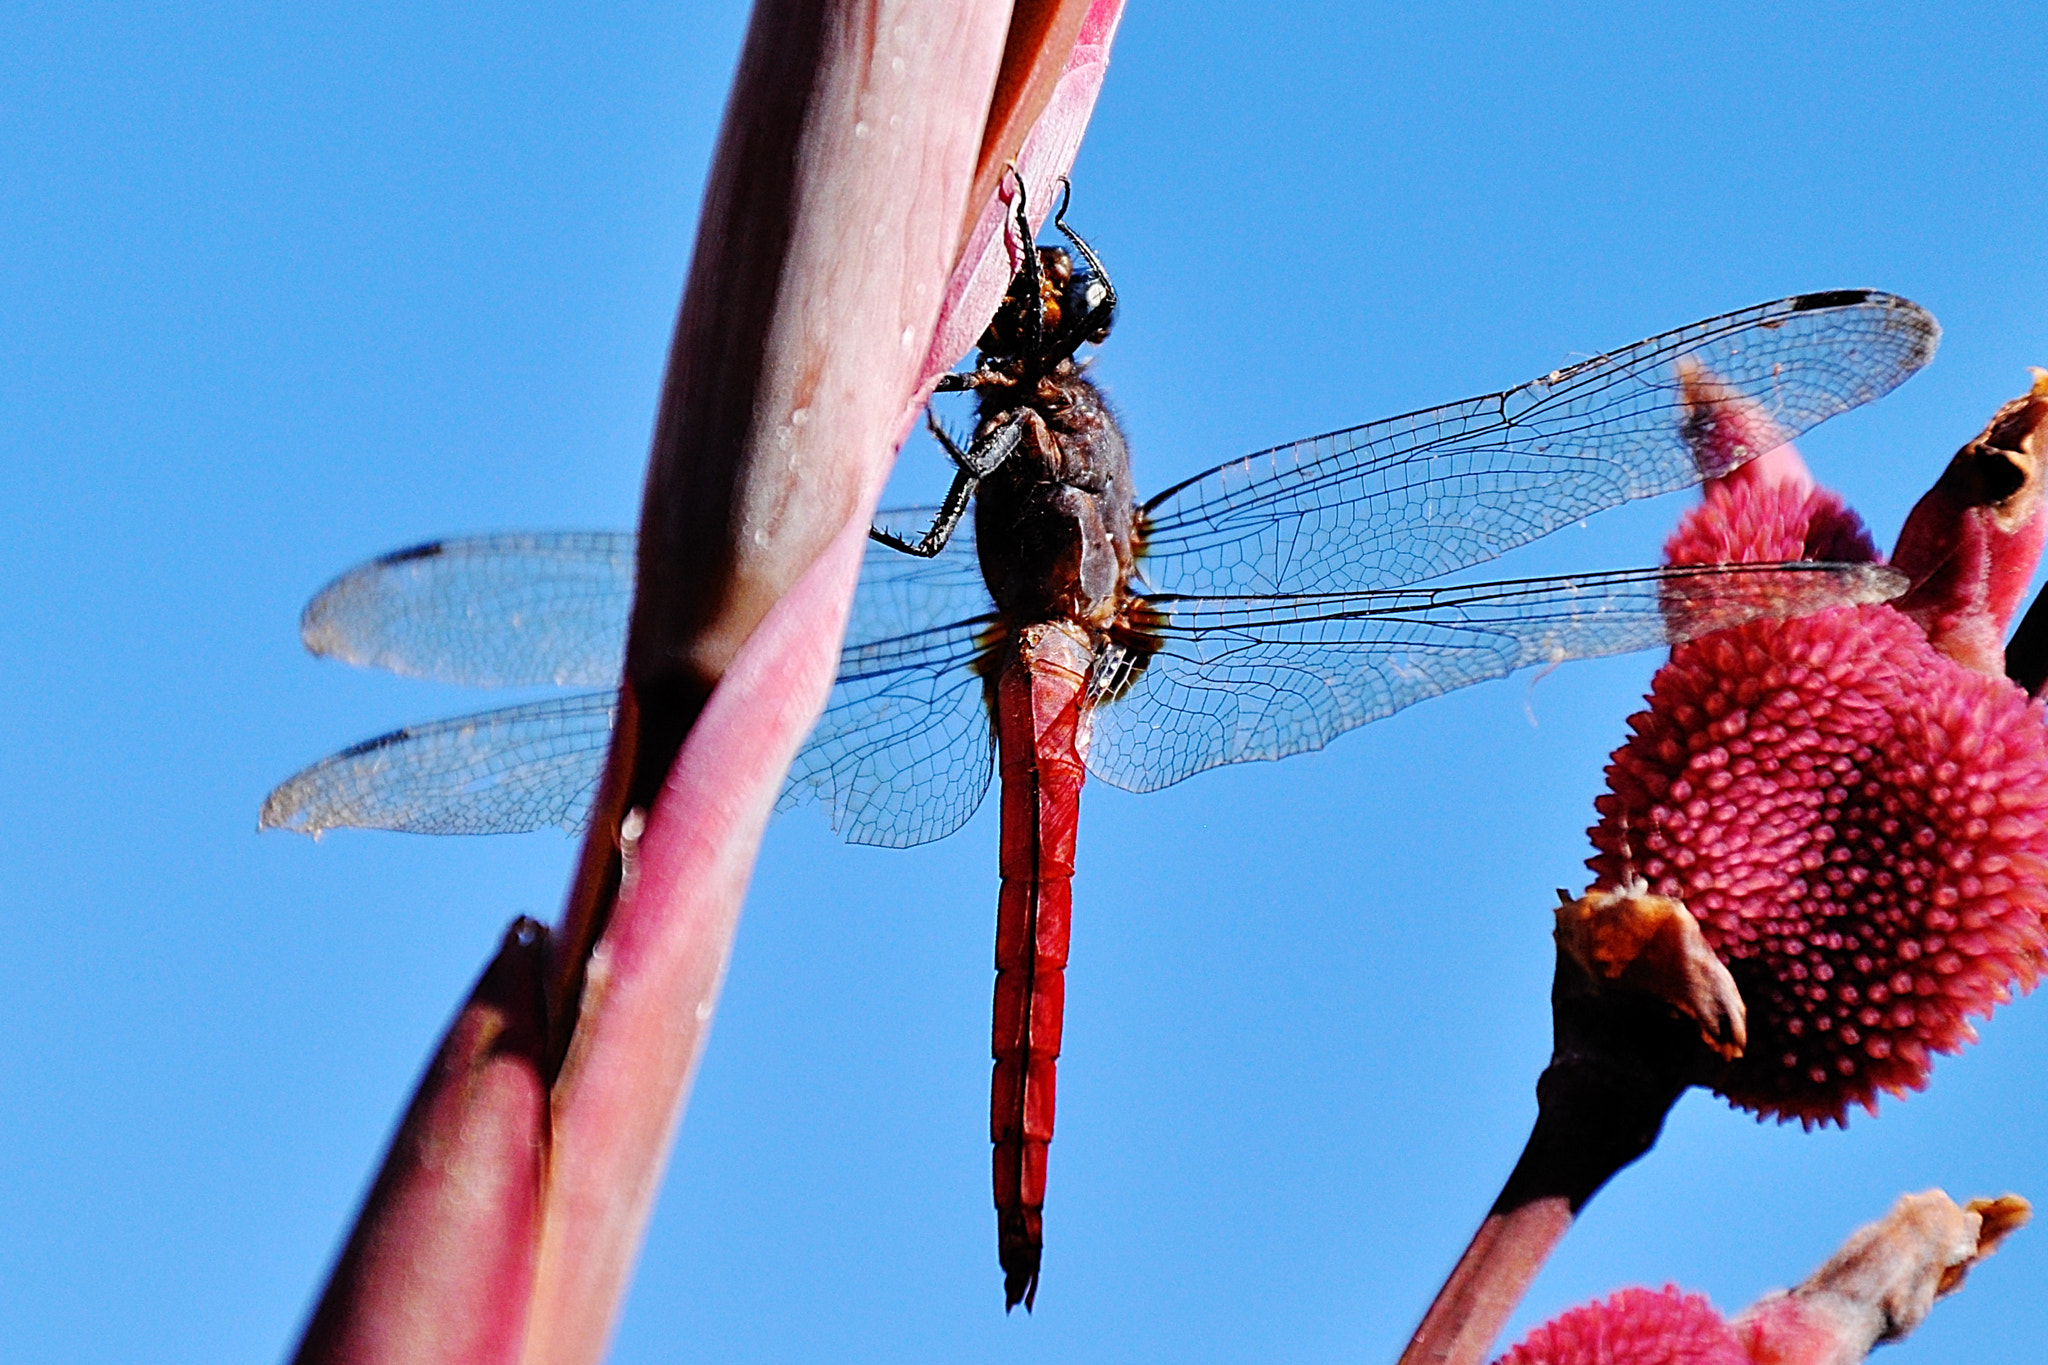 Photograph Insect against Sky by Ritesh Arora on 500px